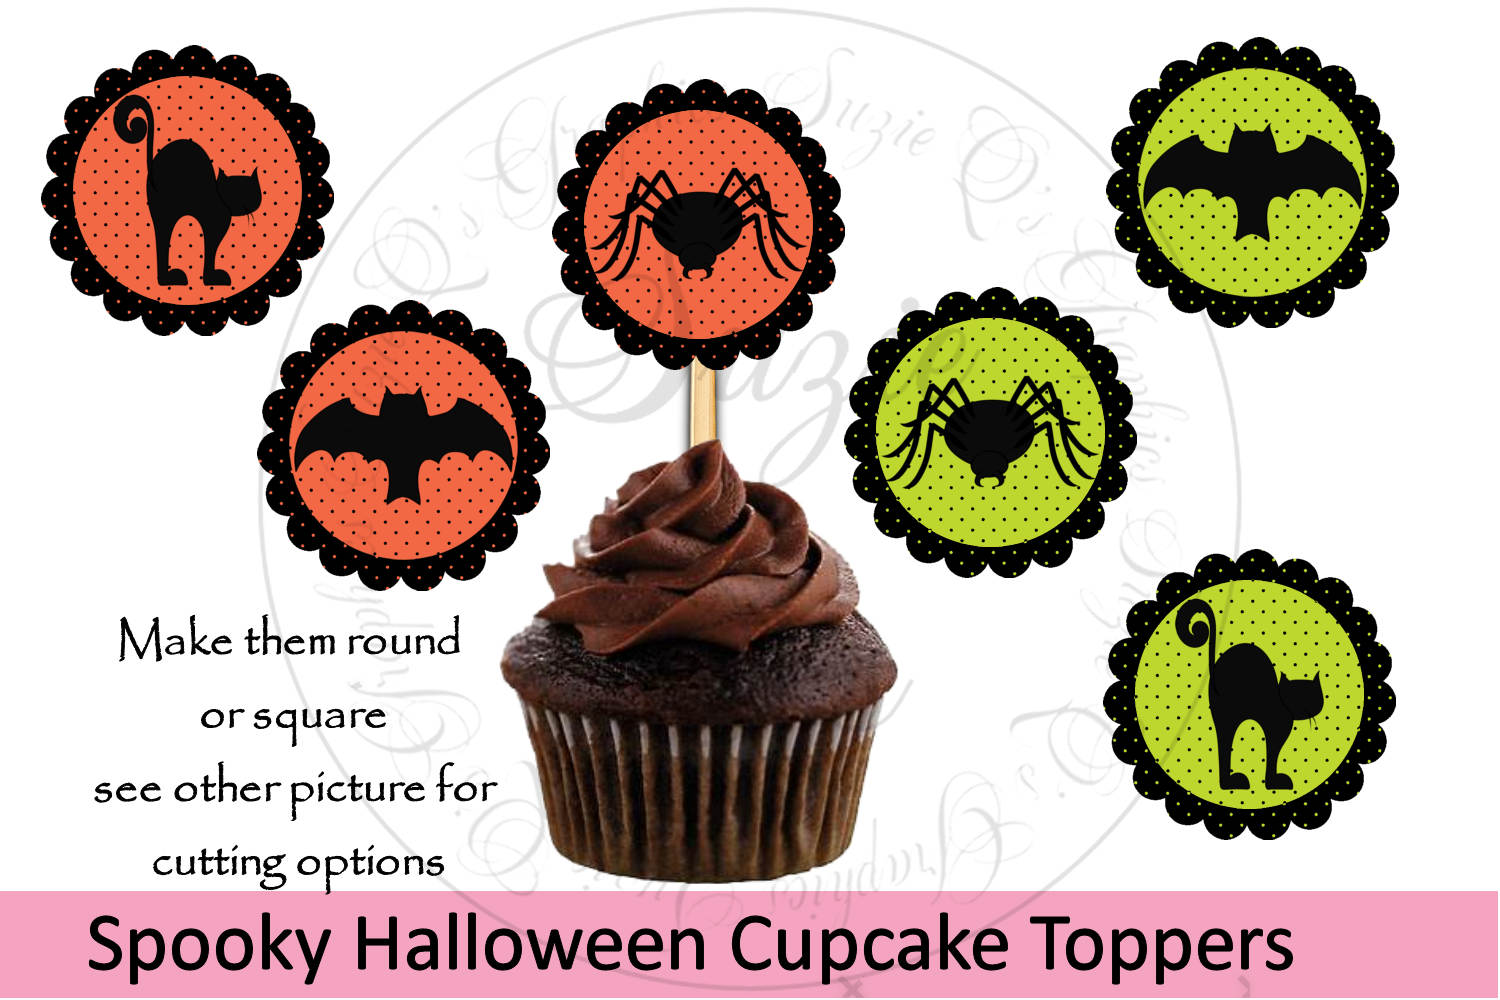 Spooky Halloween Cupcake Toppers - 4 cutting options example image 1